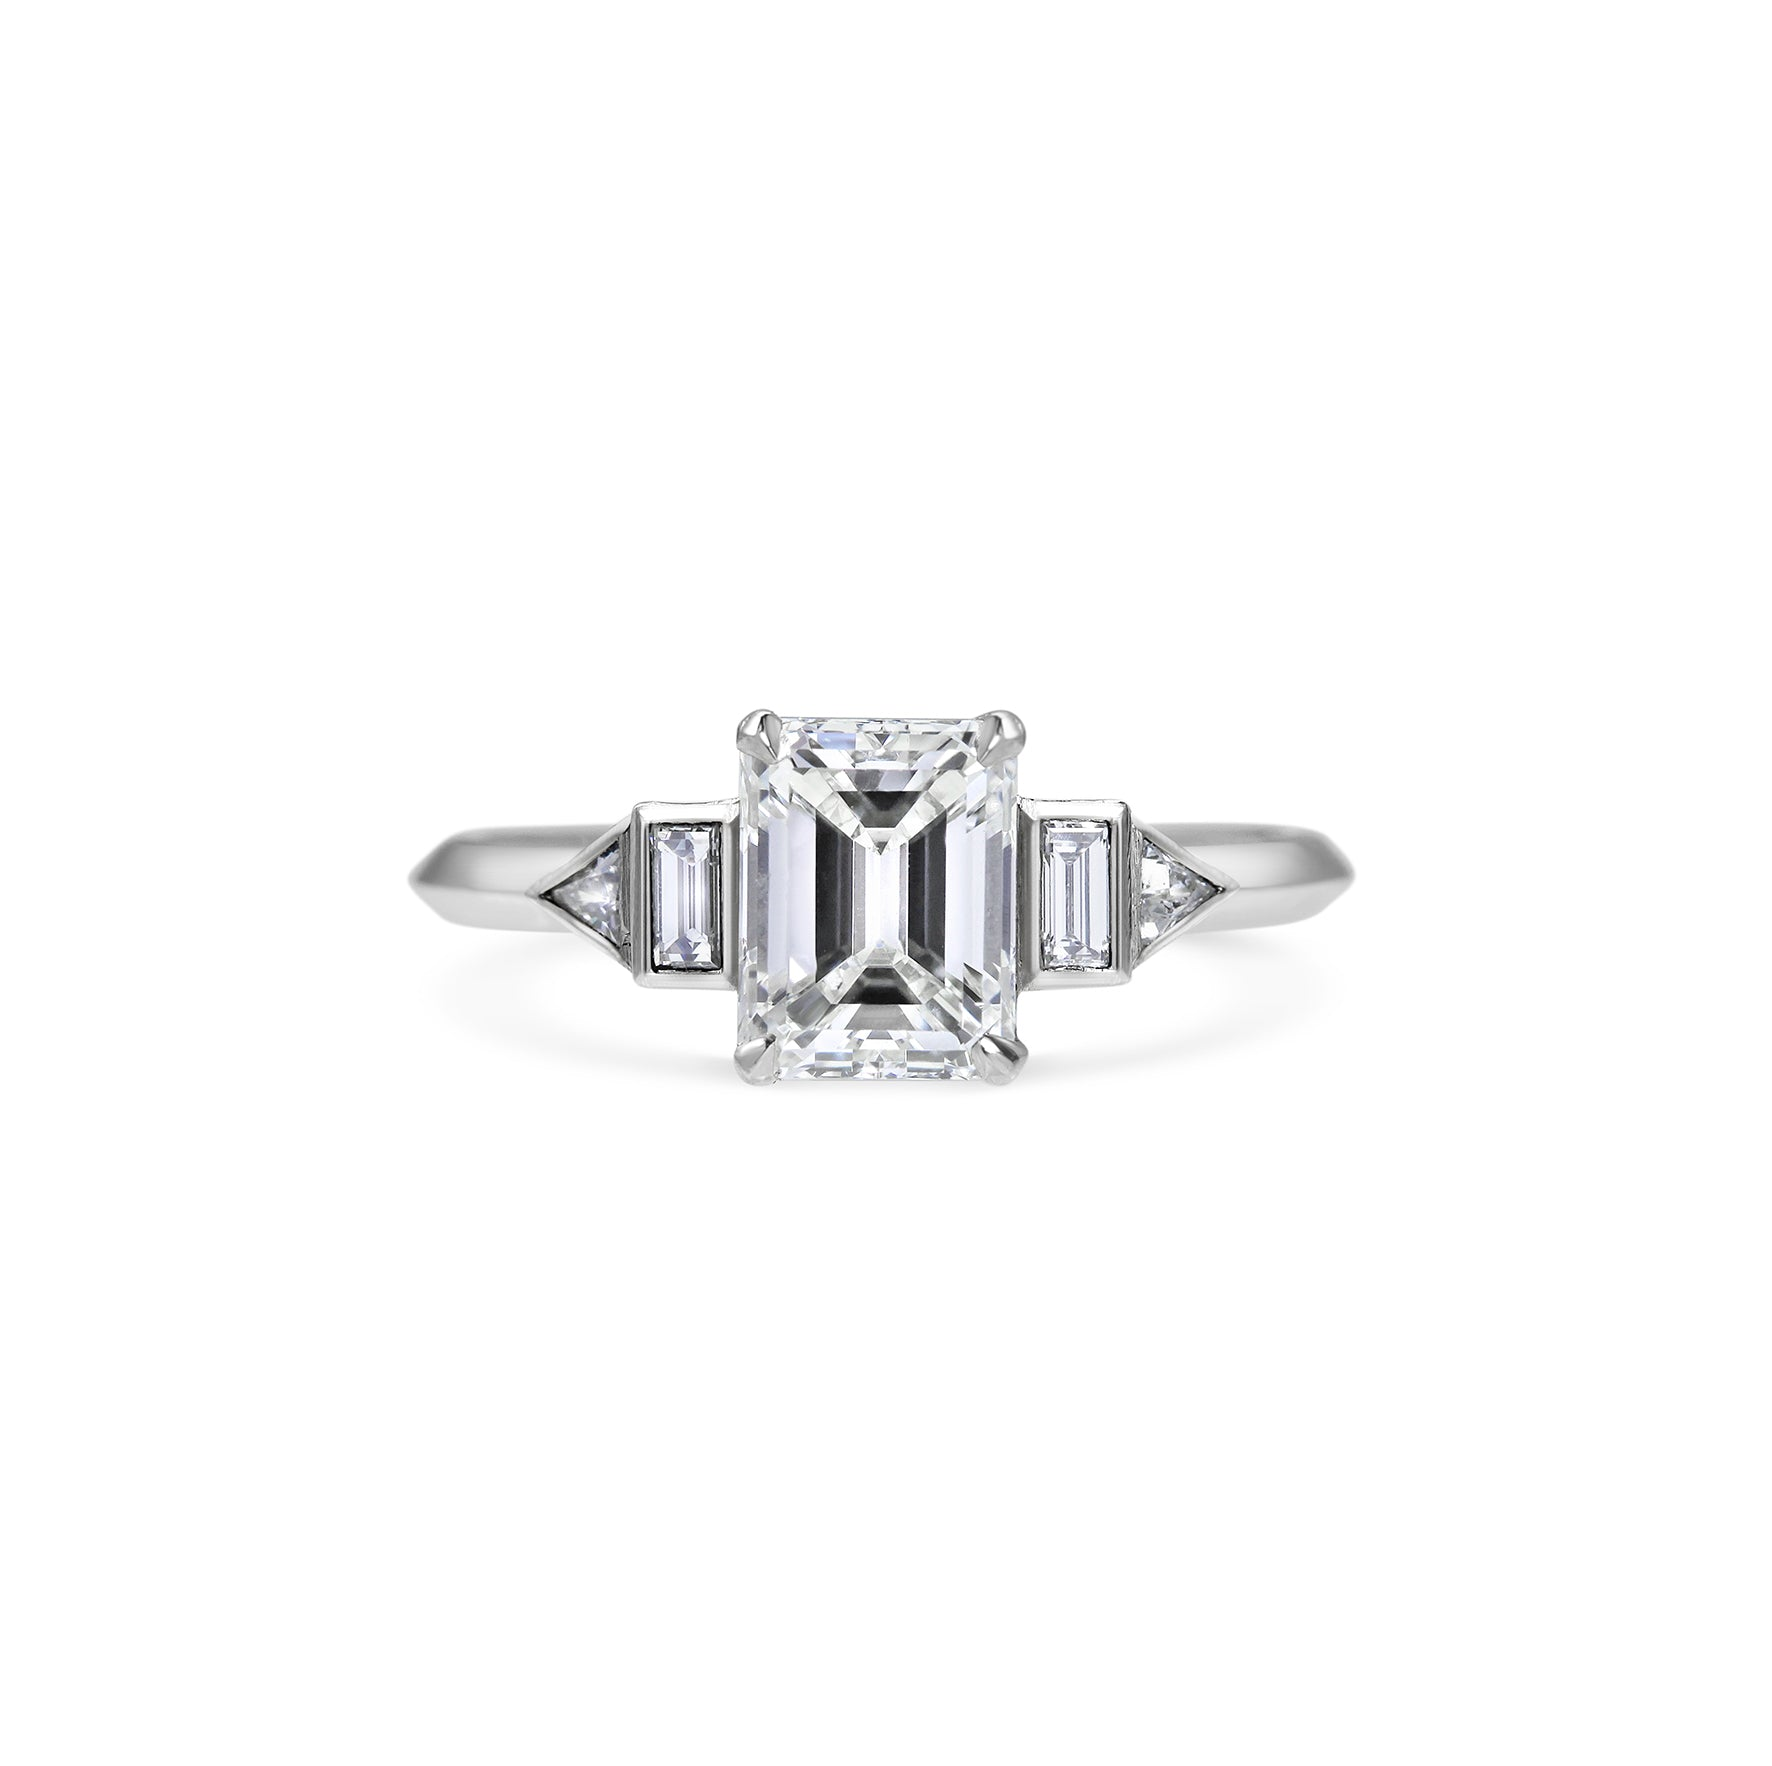 Emerald Cut Diamond with Baguette and Trillion Side diamonds